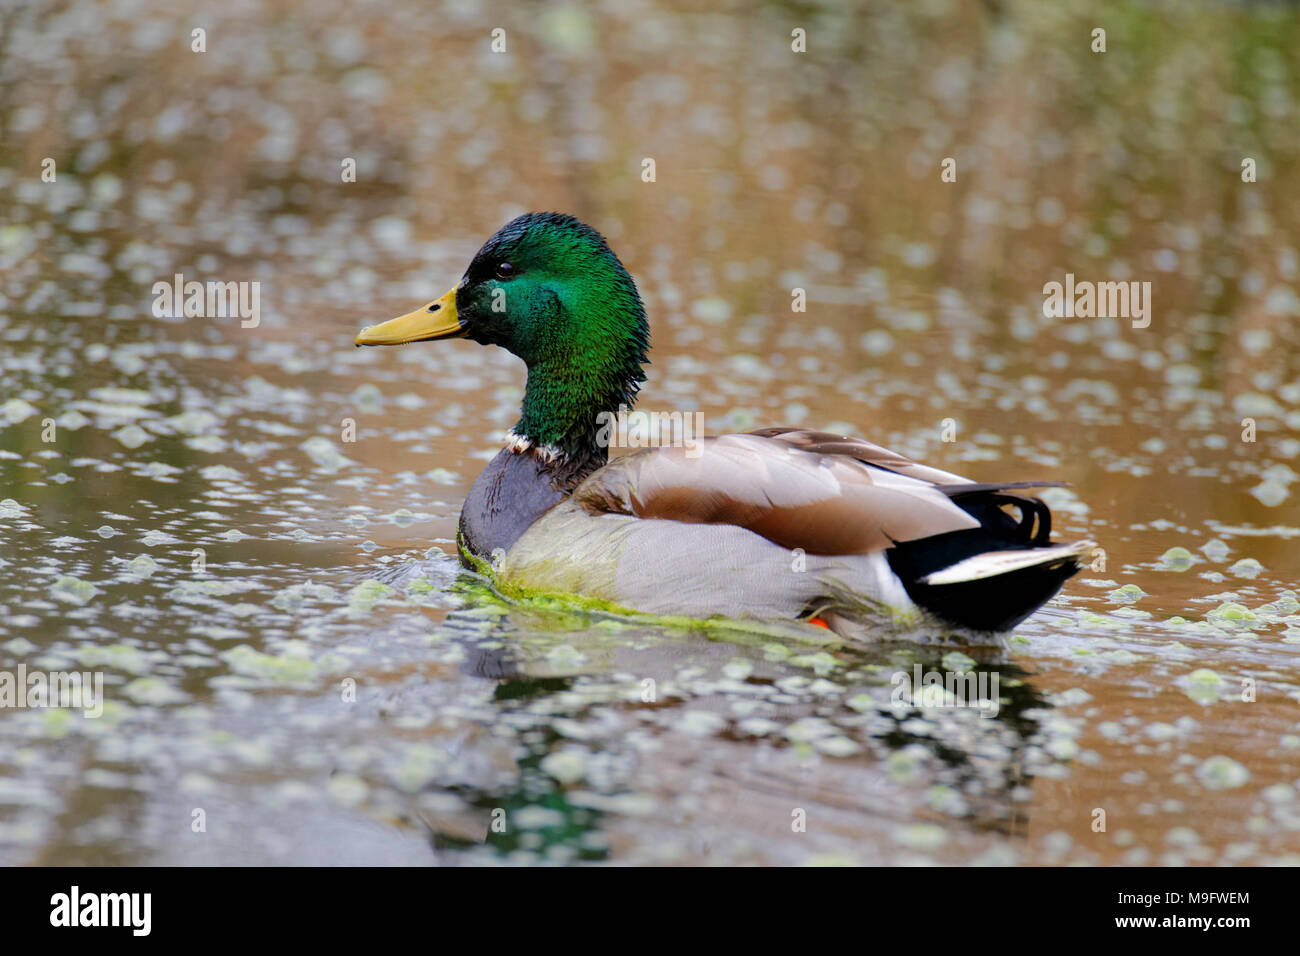 42,083.08071 close up of a green headed Mallard drake swimming on a pond, Anas platyrhynchos, Anatidae, waterfowl, breeding colors - Stock Image